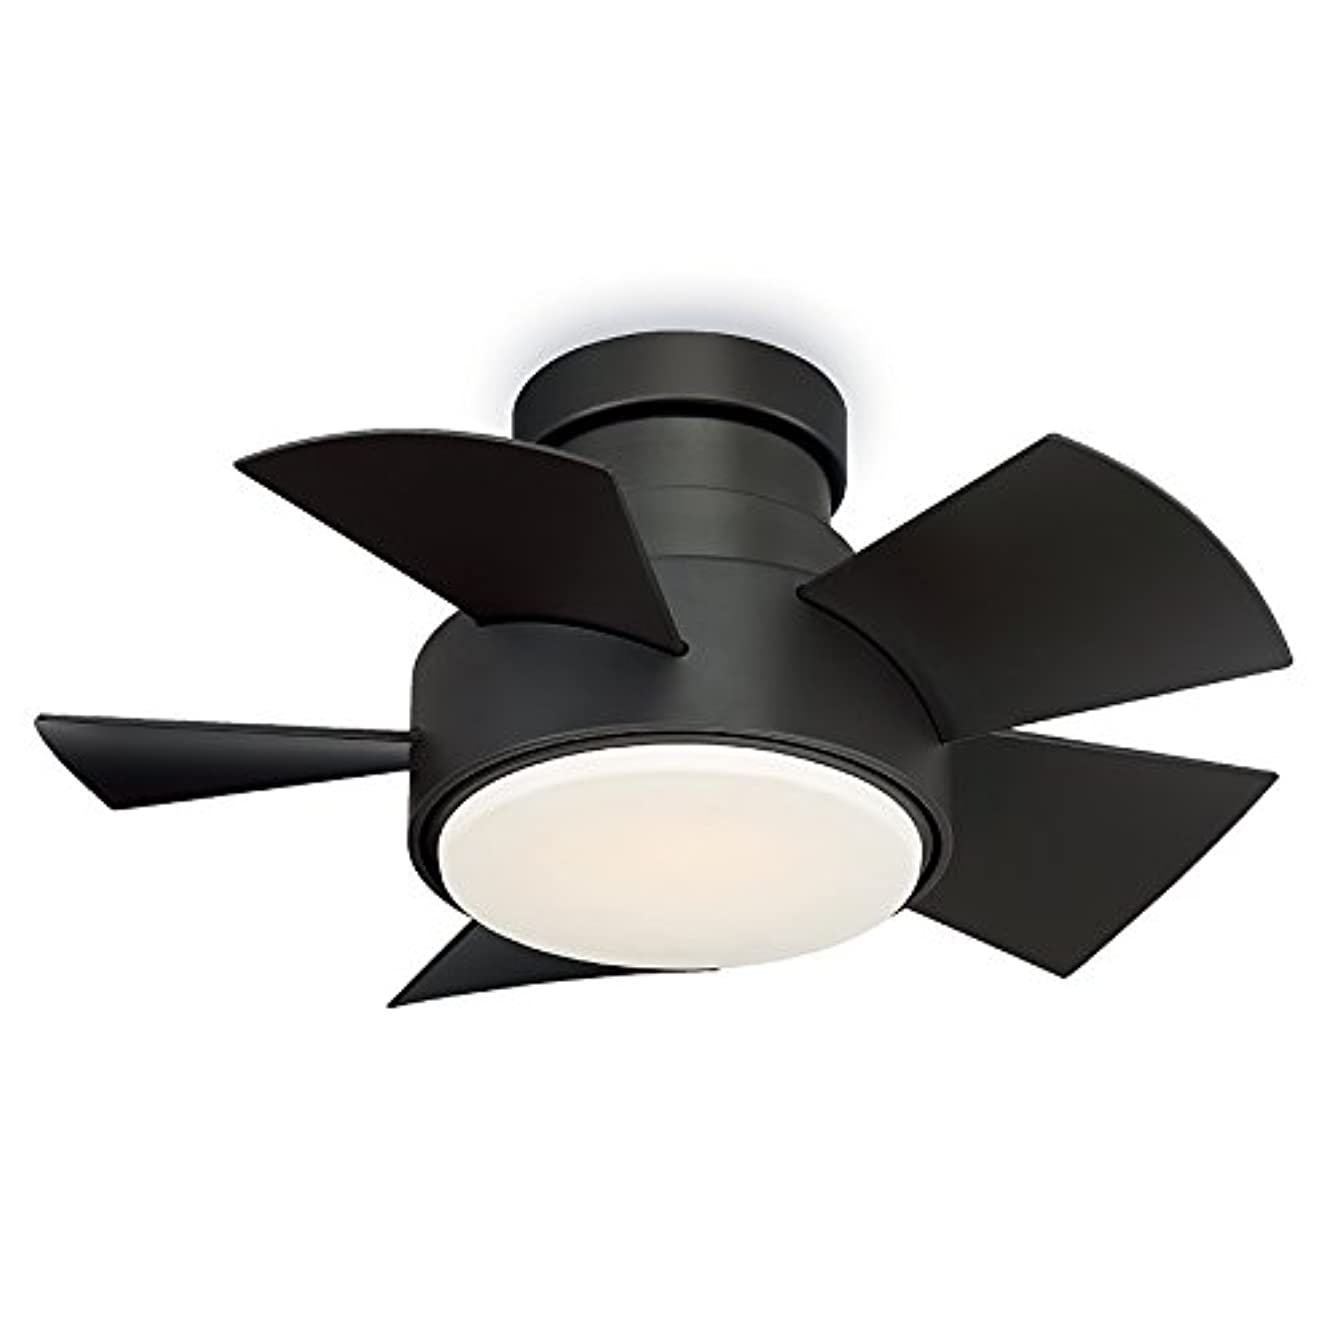 Modern Forms FH-W1802-26L-BZ Vox 26 Inch Five Blade Indoor/Outdoor Smart Fan with Six Speed DC Motor and LED Light in Bronze Finish Works with Nest, Ecobee, Google Home and IOS/Android App,